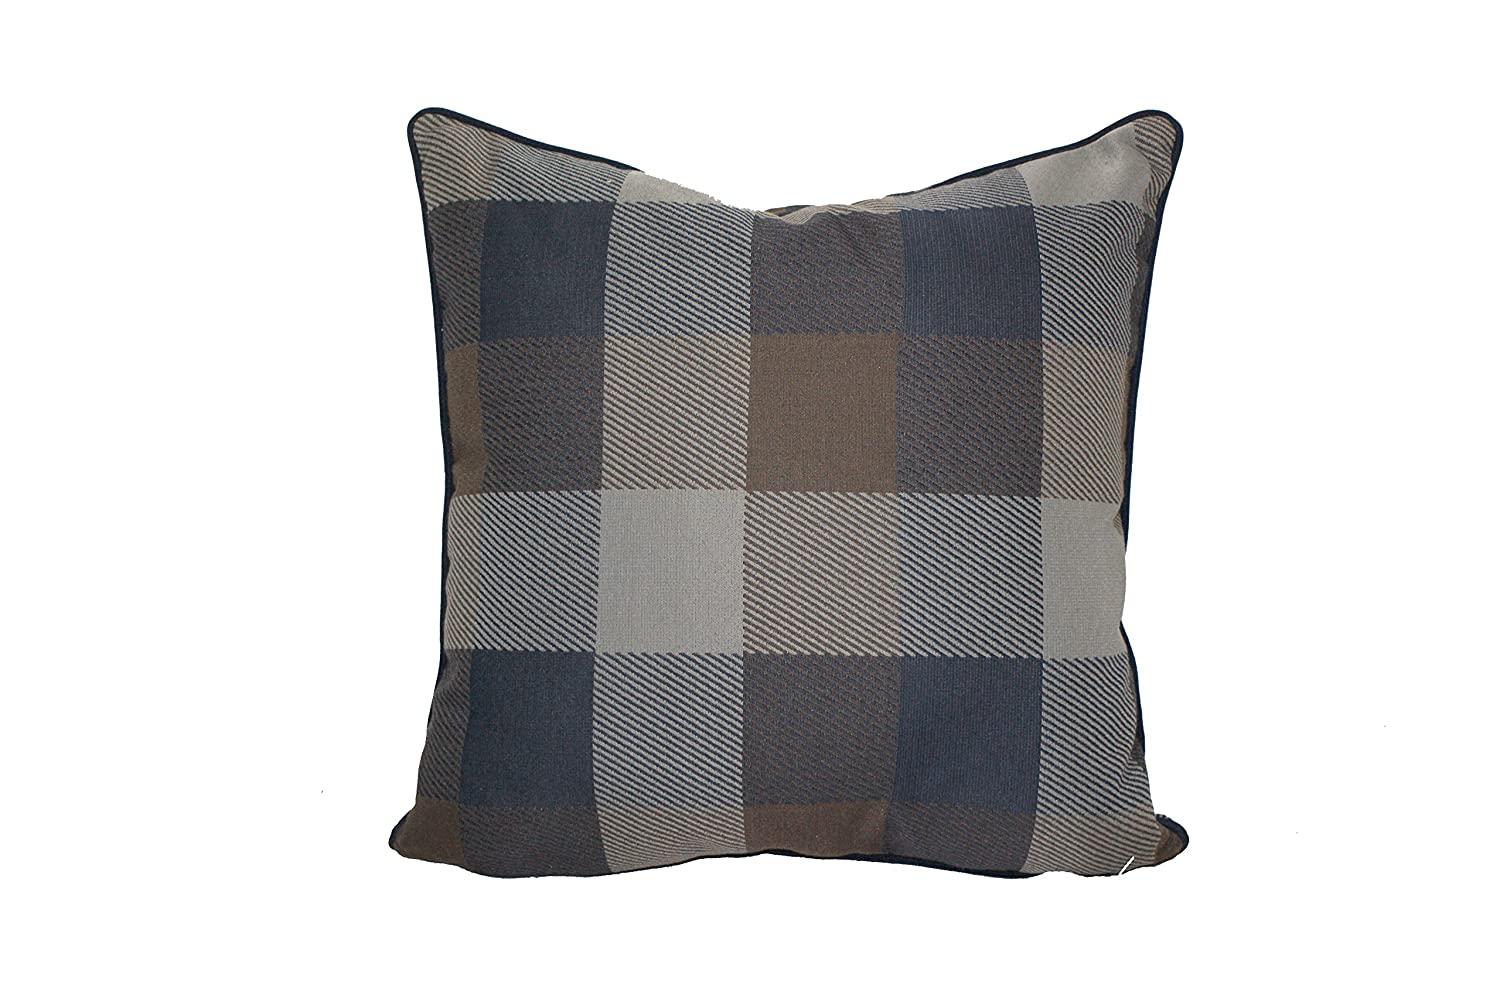 Amazon.com: Urban Loft by Westex Plaid Feather Filled ...